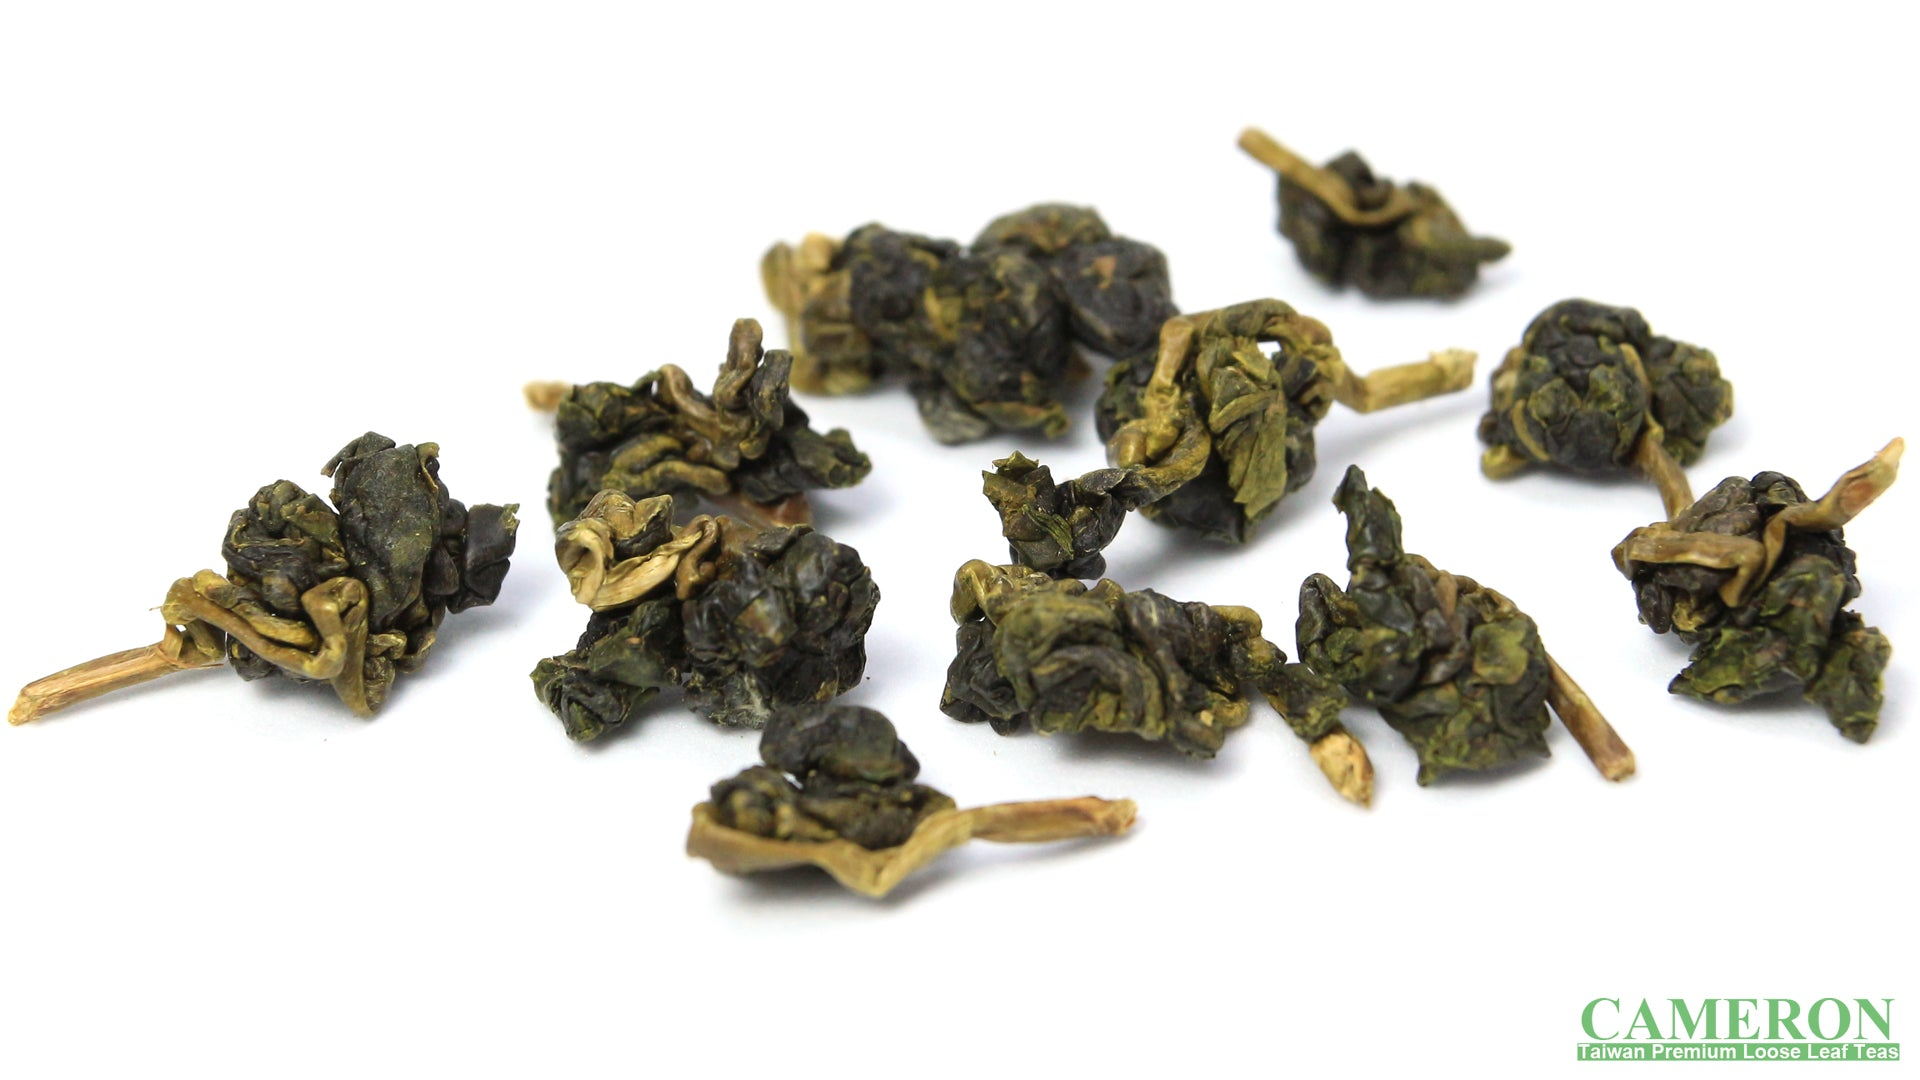 Taiwan LiShan Oolong Tea - LiShan Oolong